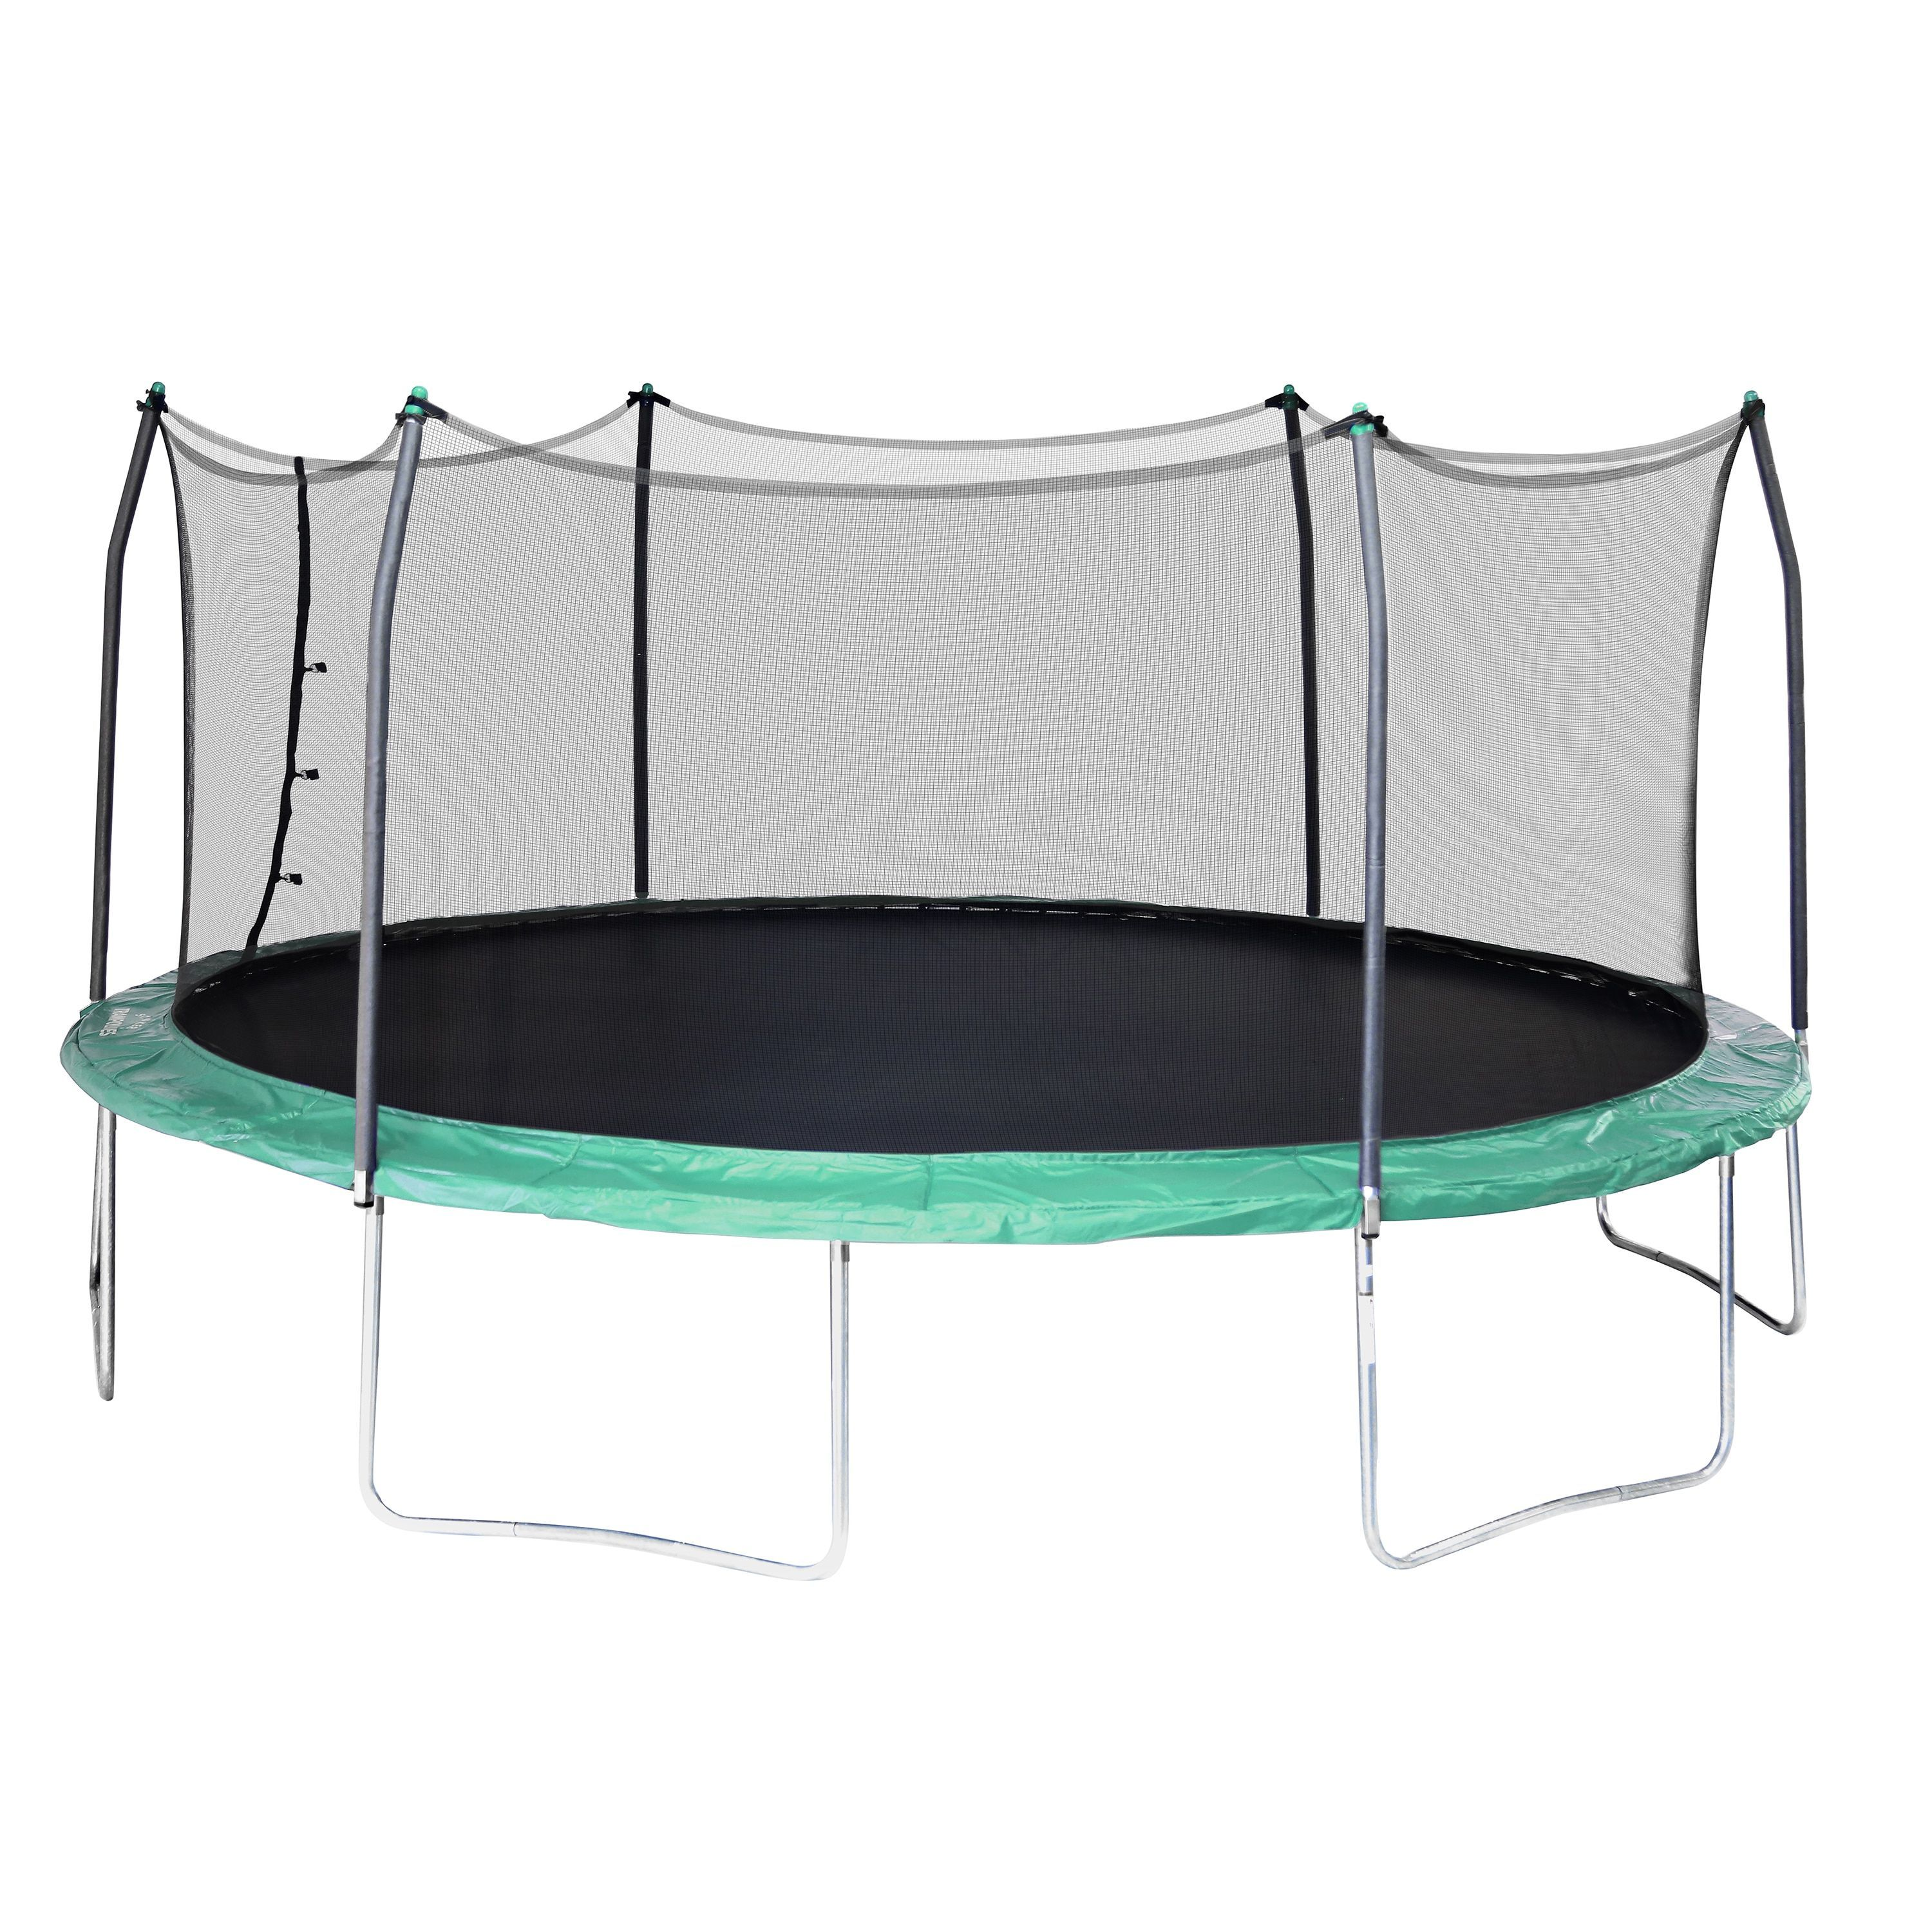 Skywalker Trampolines Green 17 Foot Oval Trampoline With Enclosure